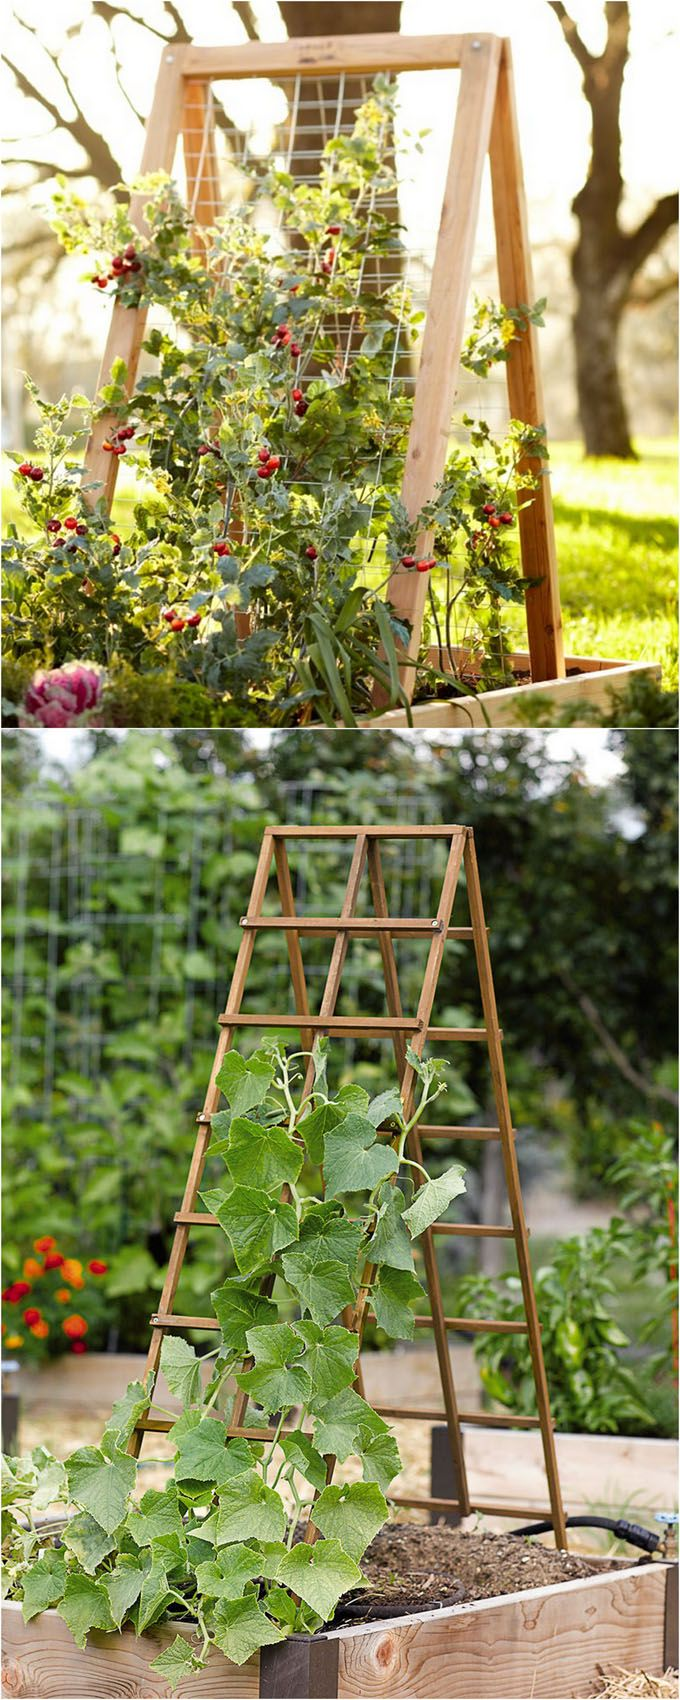 25 Best Trellis Ideas On Pinterest Trellis Flower Vines And Patio